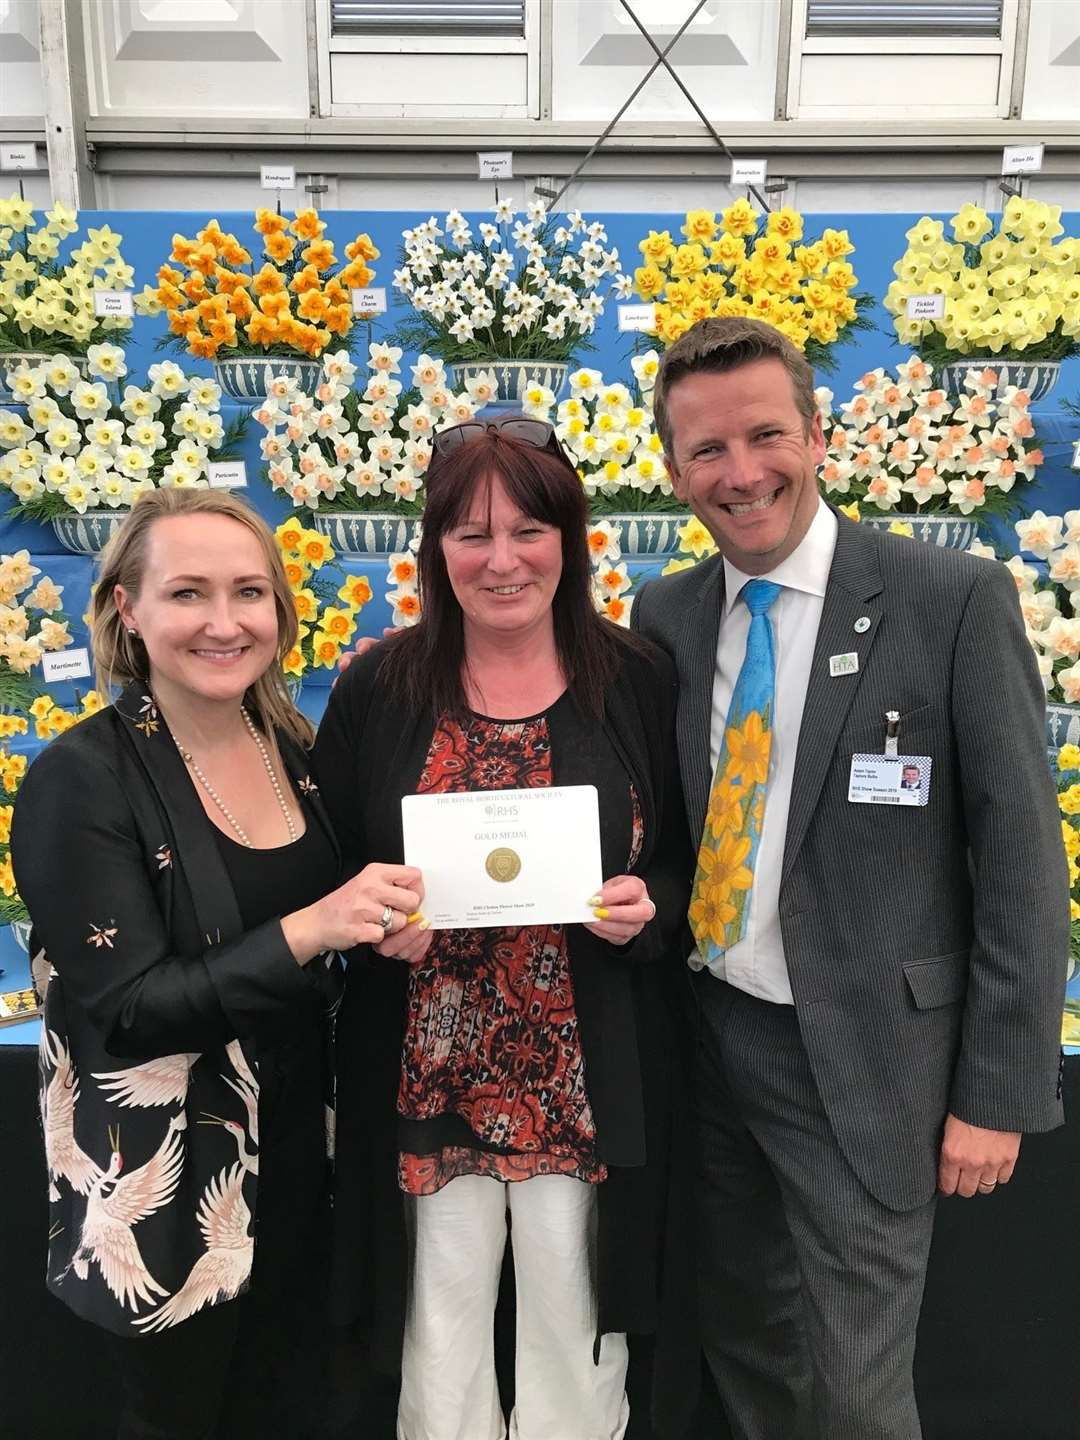 Rebecca Brookhouse, Sallyanne Foreman and Adam Taylor with a 26th gold at the RHS Chelsea Flower Show.